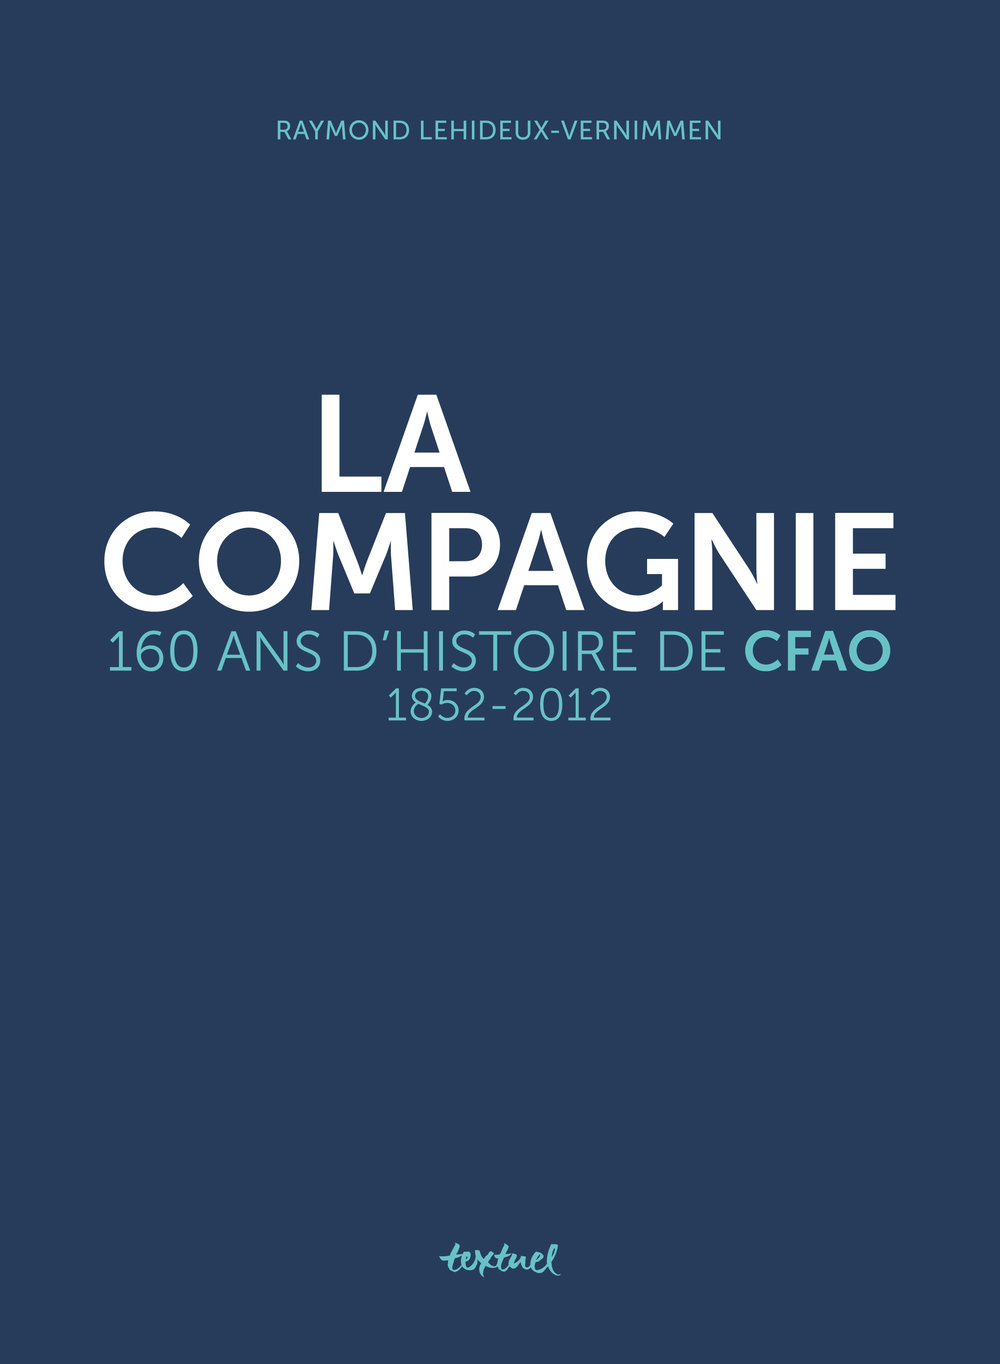 CFAOLa Compagnie - Corporate Book Design for the French Company CFAO's 160th Jubilee.Client: CFAO / Éditions Textuel